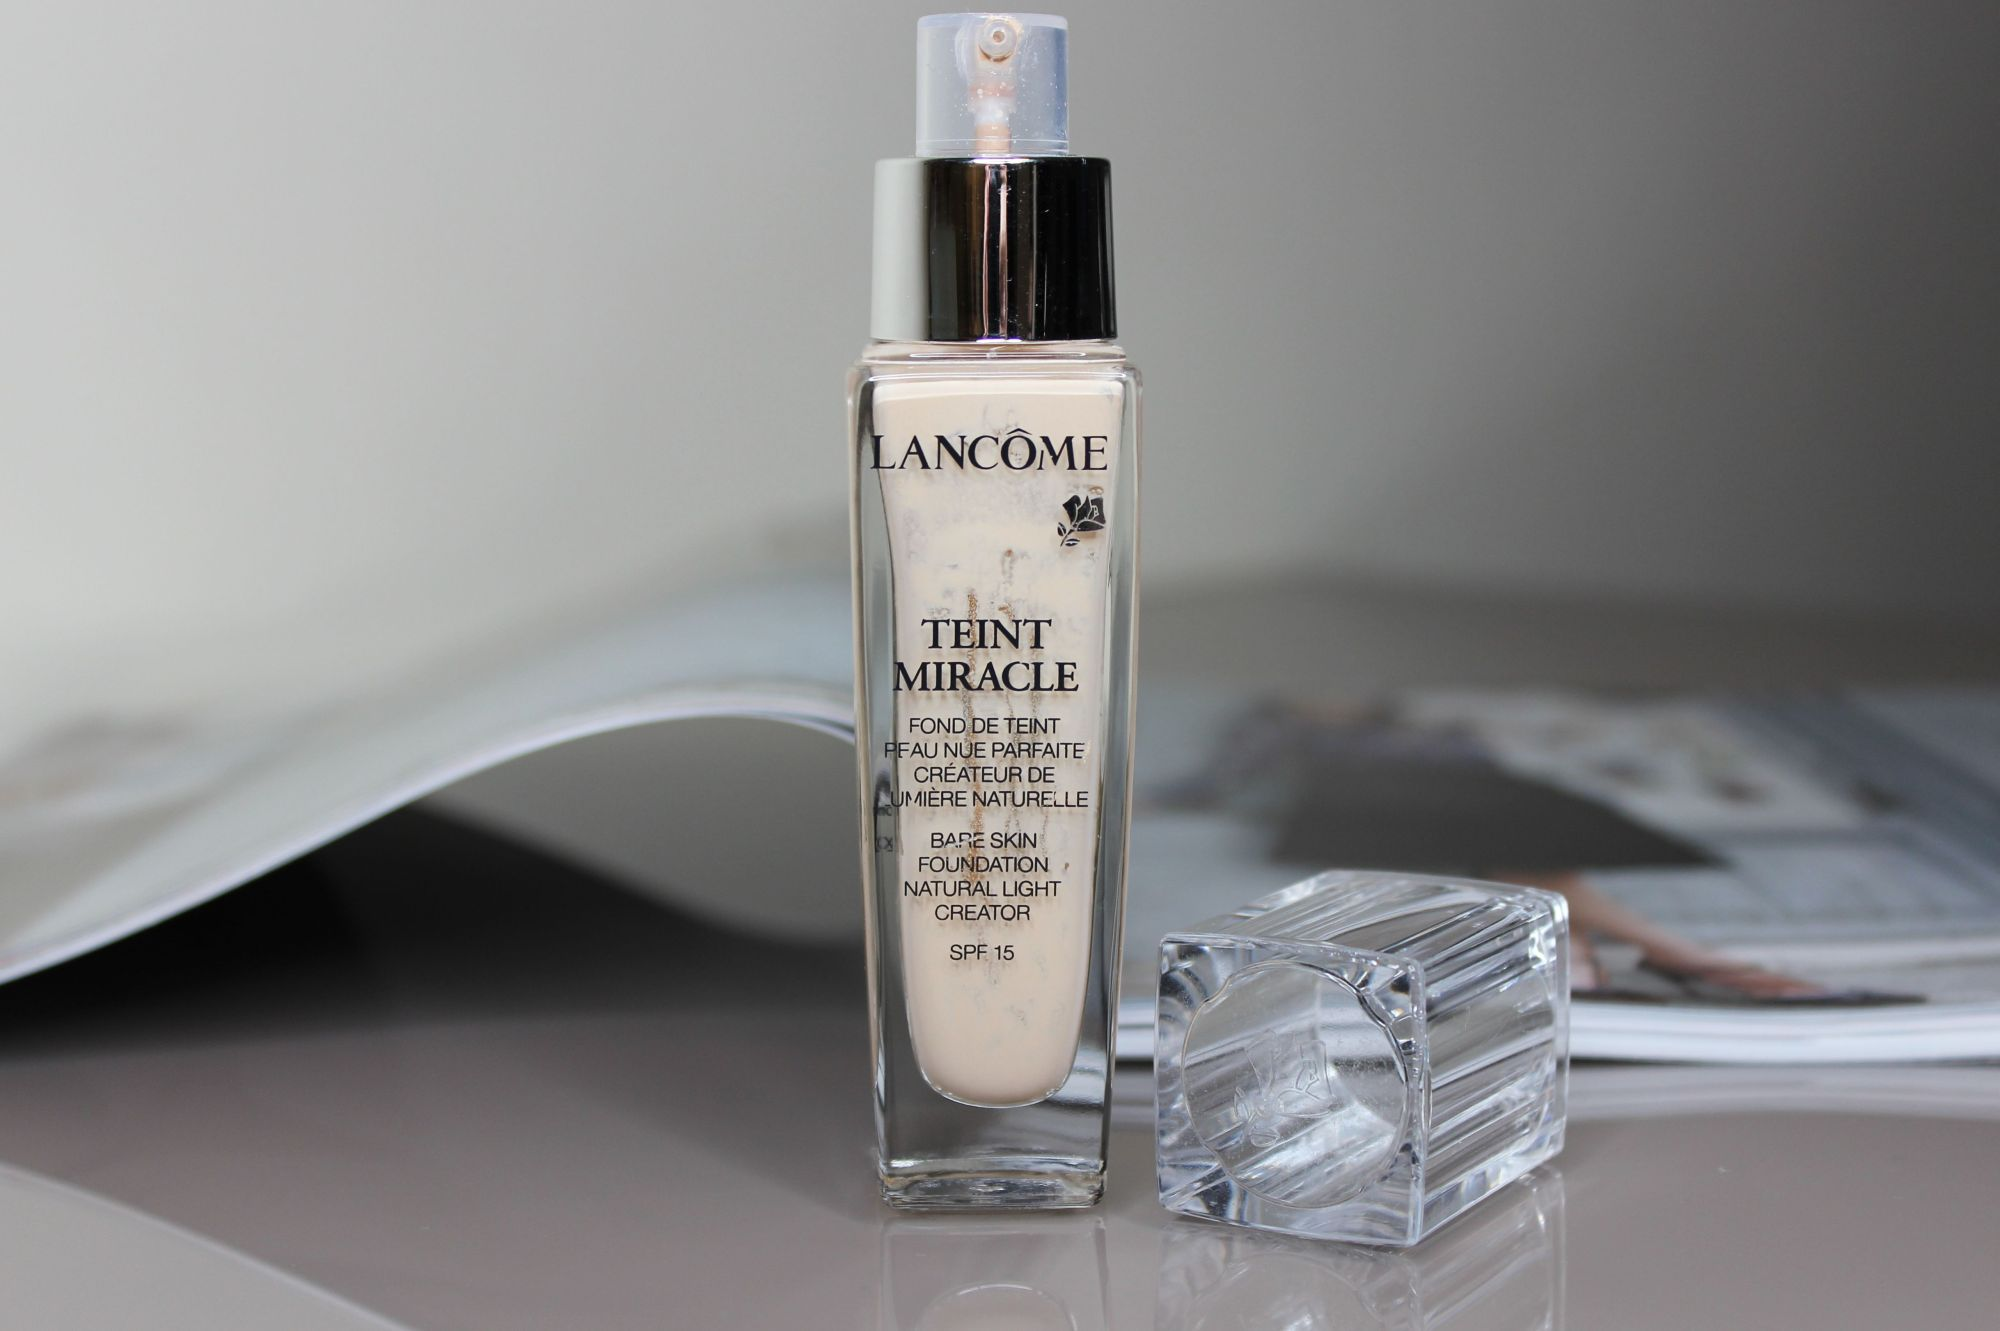 Lancome Teint Miracle Foundation in 005